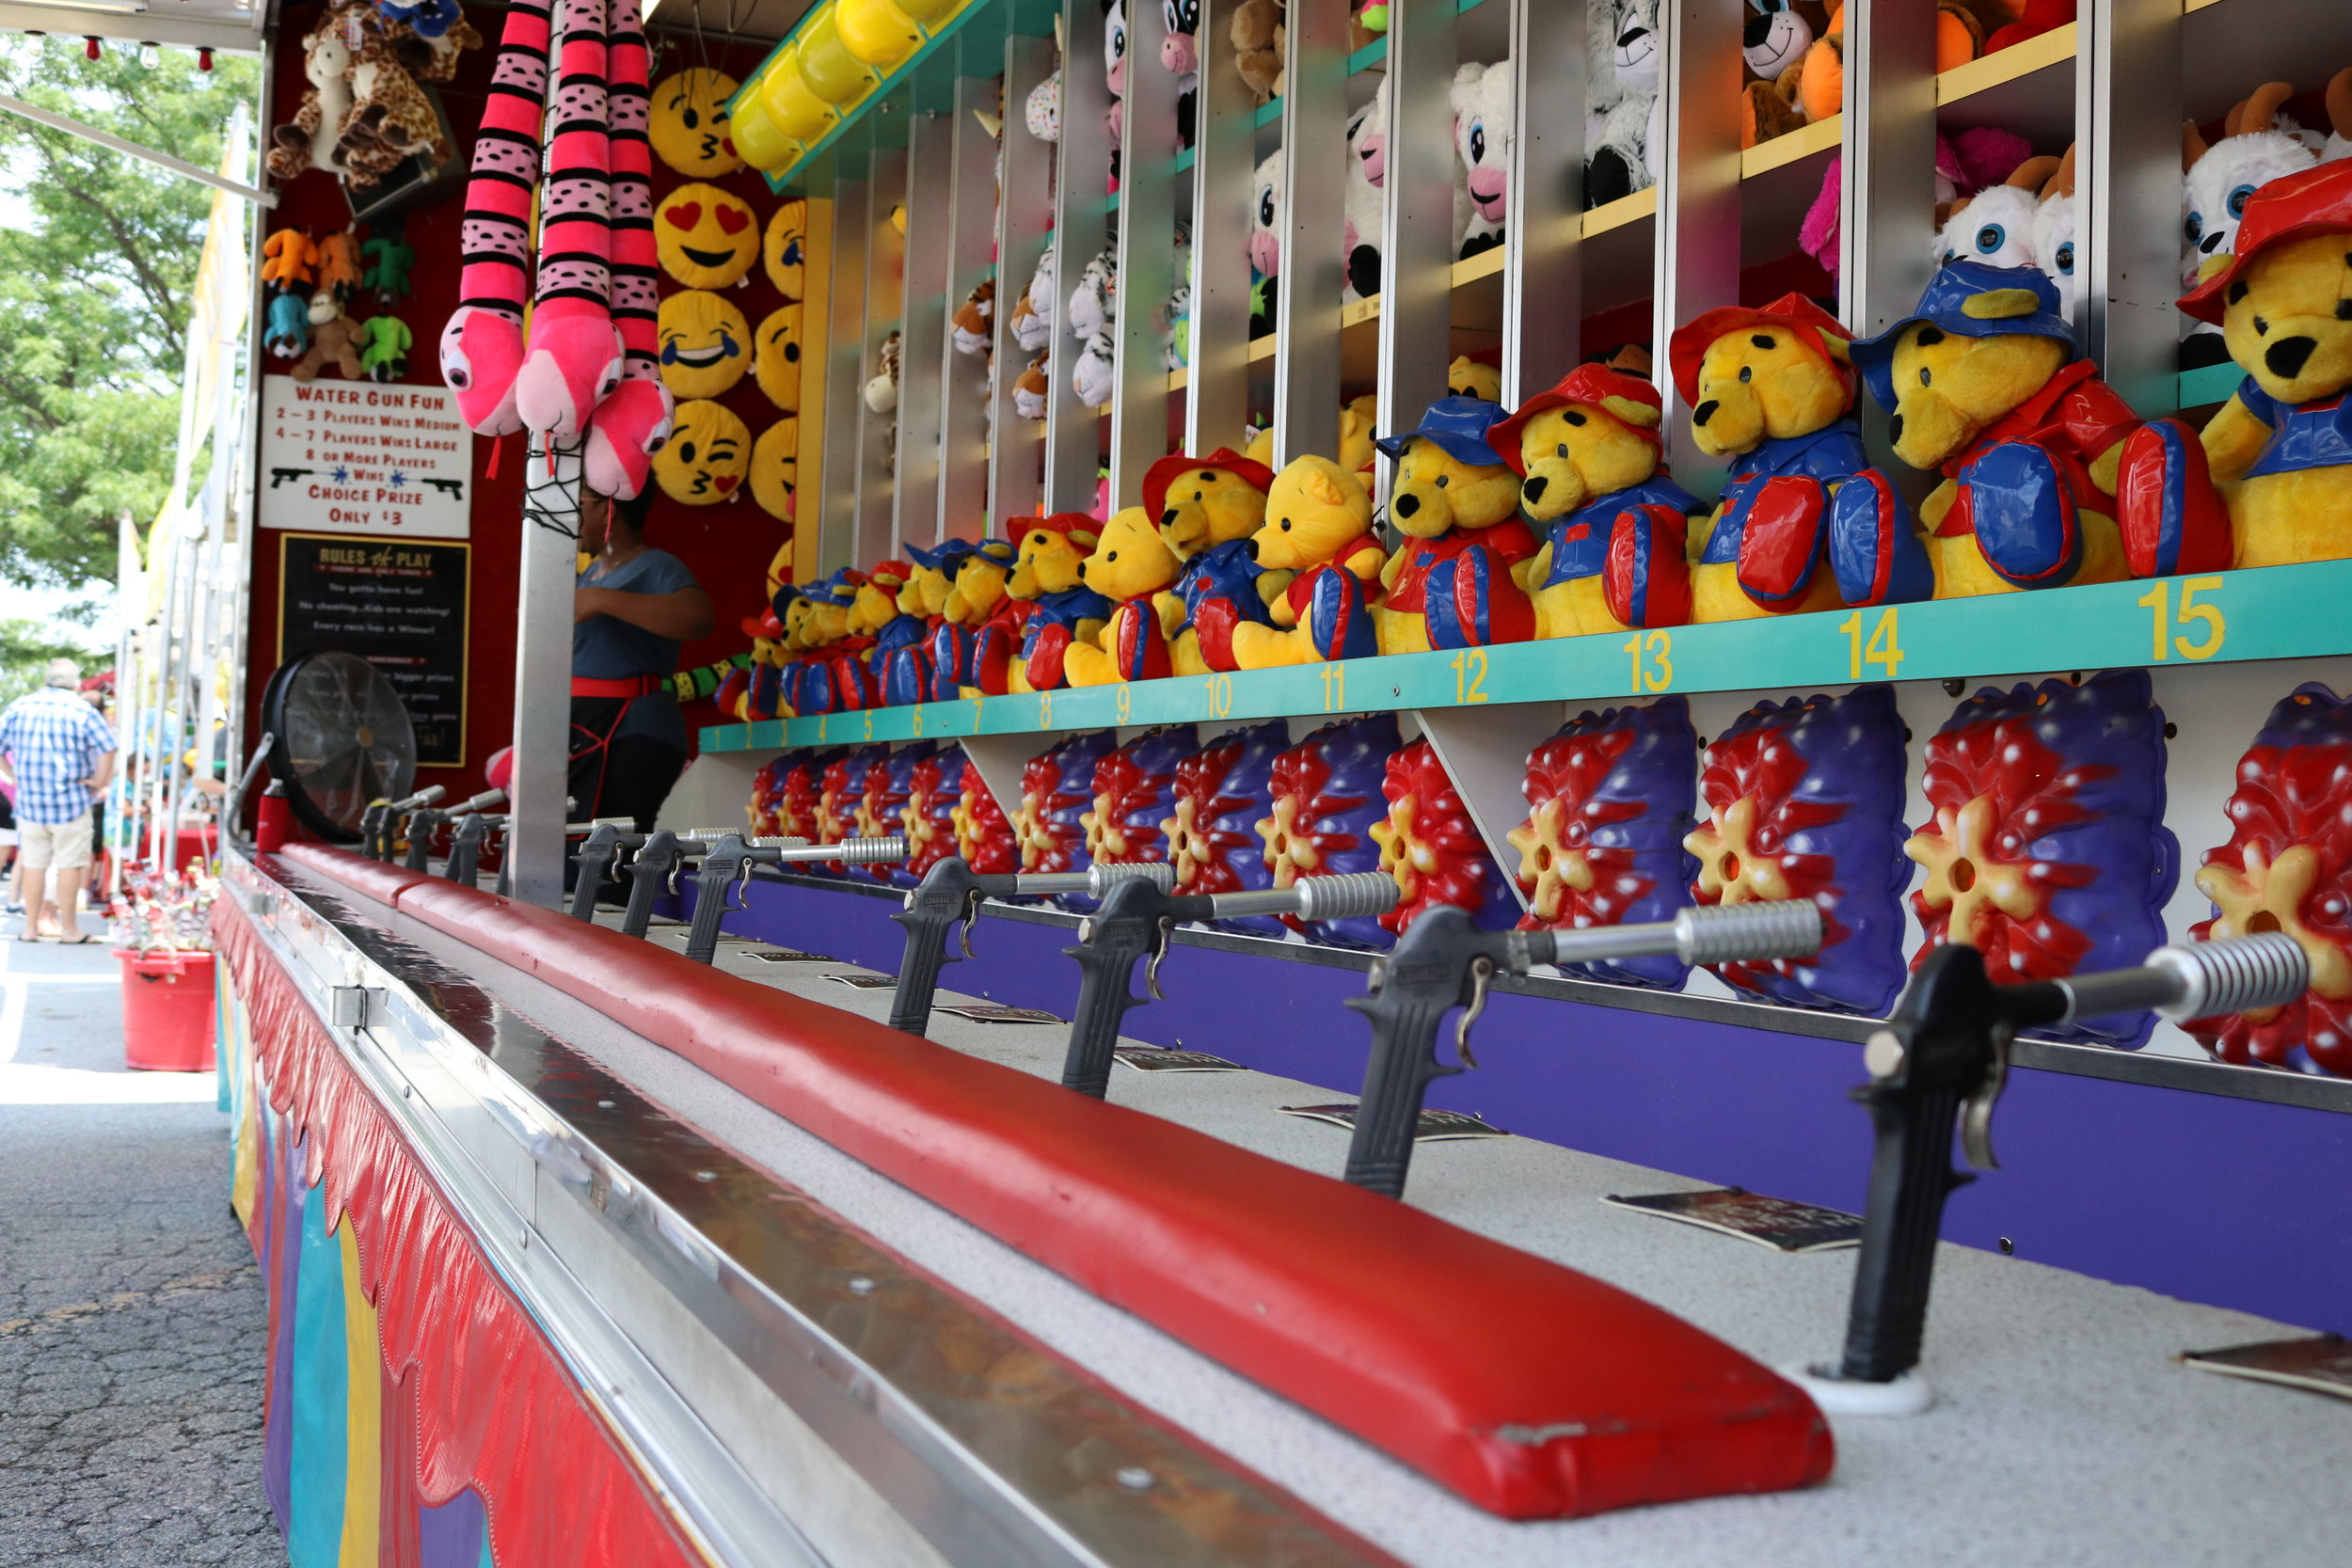 Water Gun Fun - Test your aim!! Aim for your target and who ever reaches the top first will win a prize. Up to 17 players at once